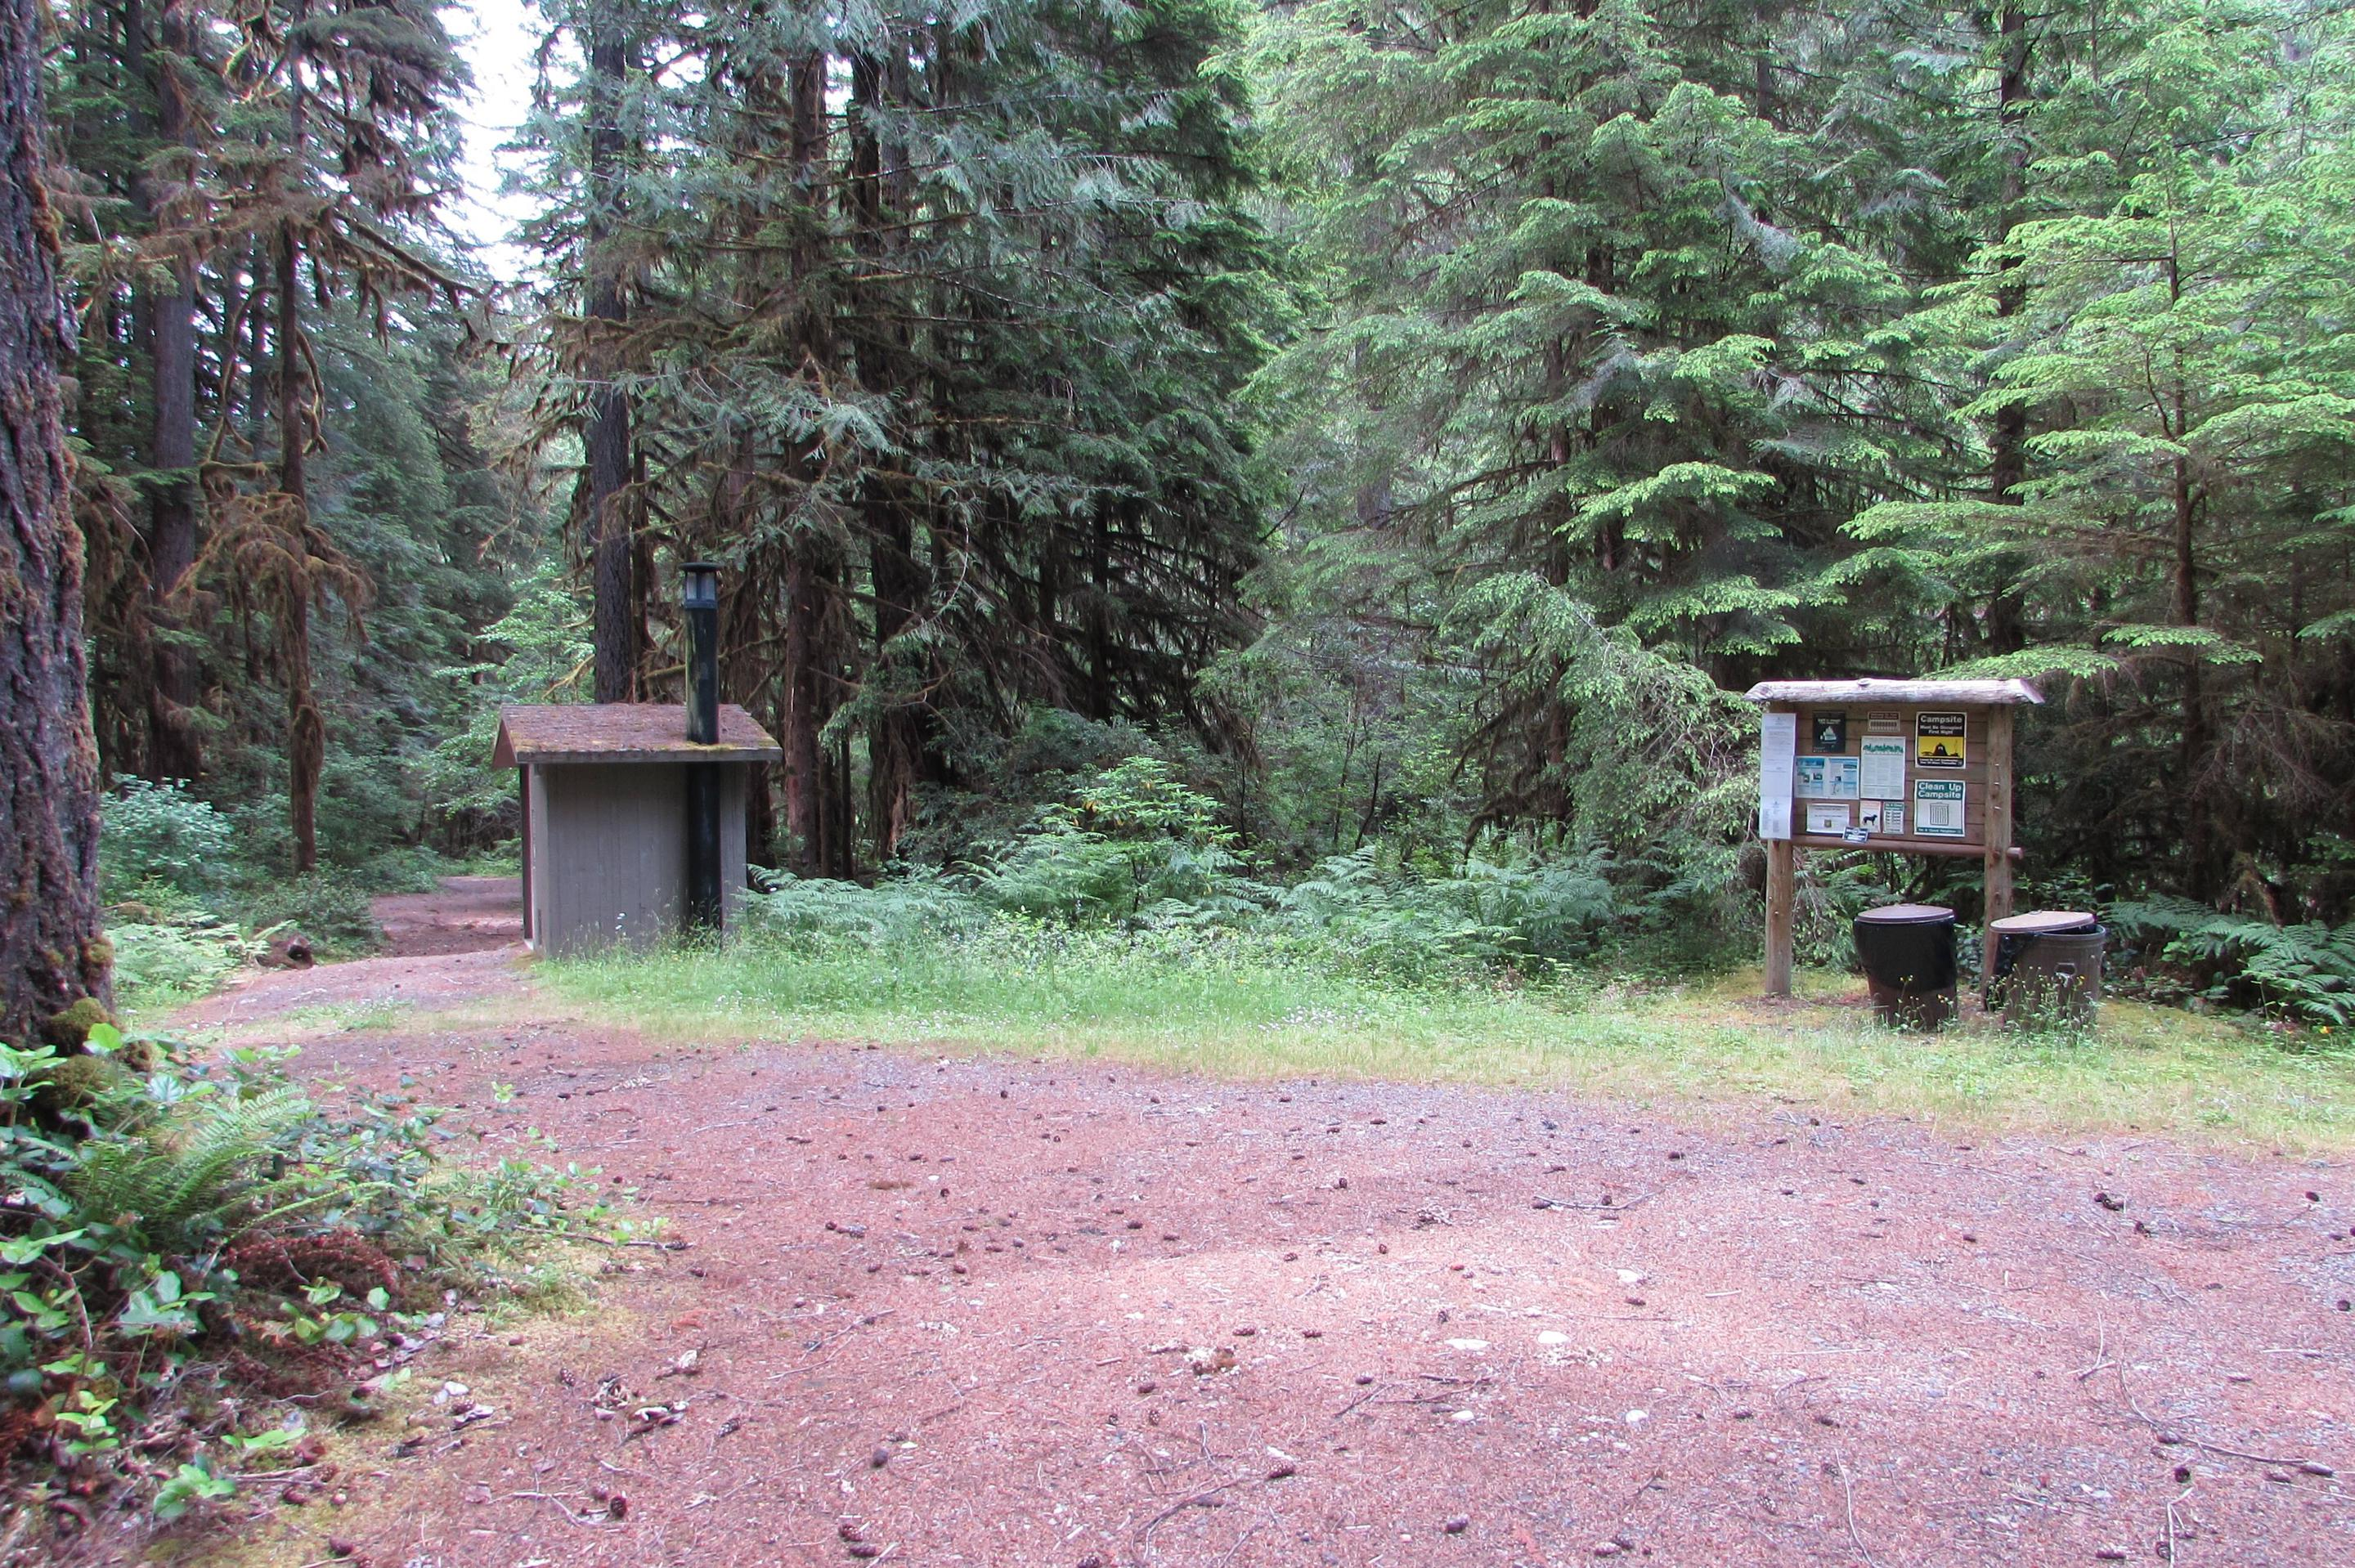 Info board and toiletCampsites at the East side of the campground have their own information board and vault toilet